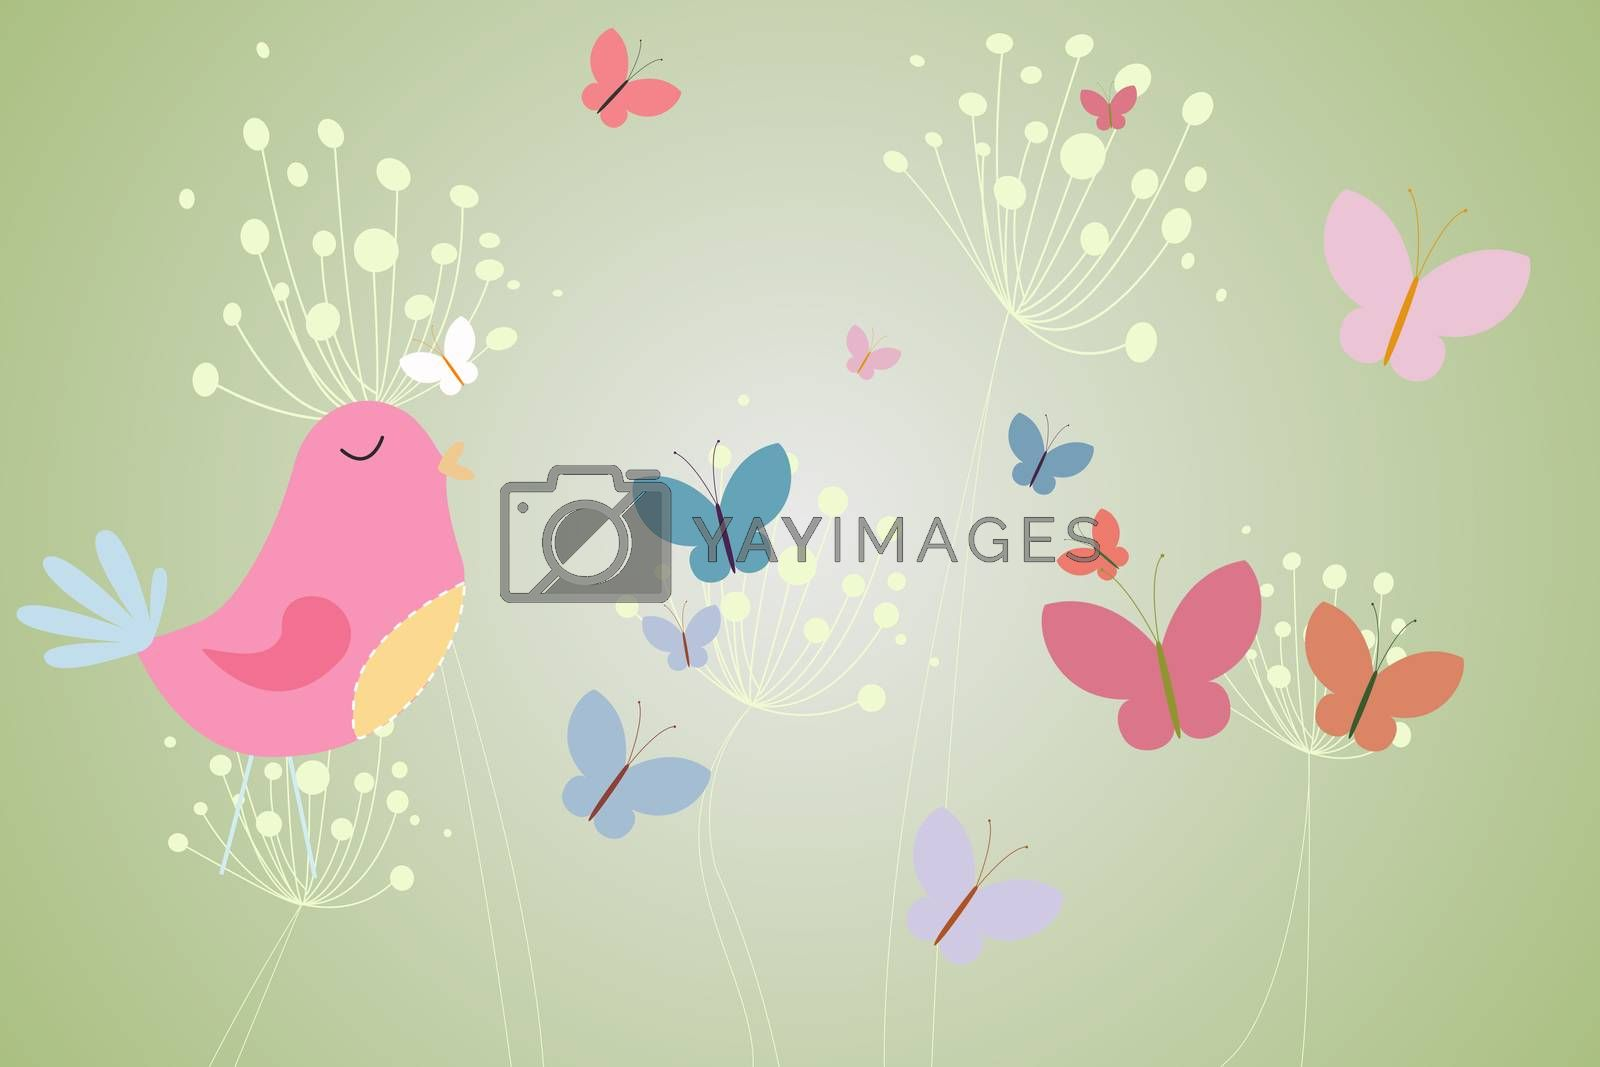 Royalty free image of Pink bird with heart and dandelions by Wavebreakmedia